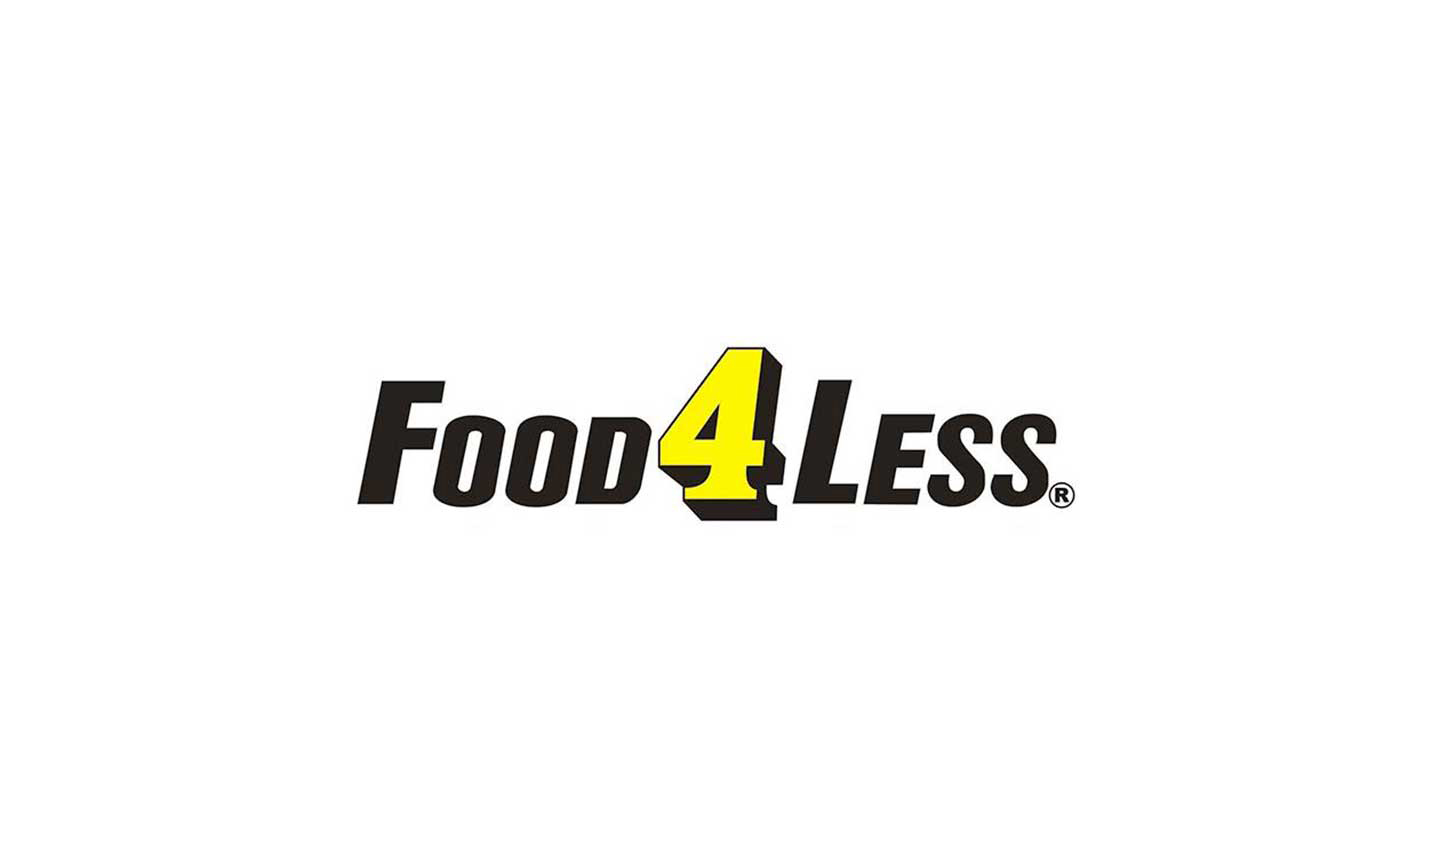 Food 4 Less logo